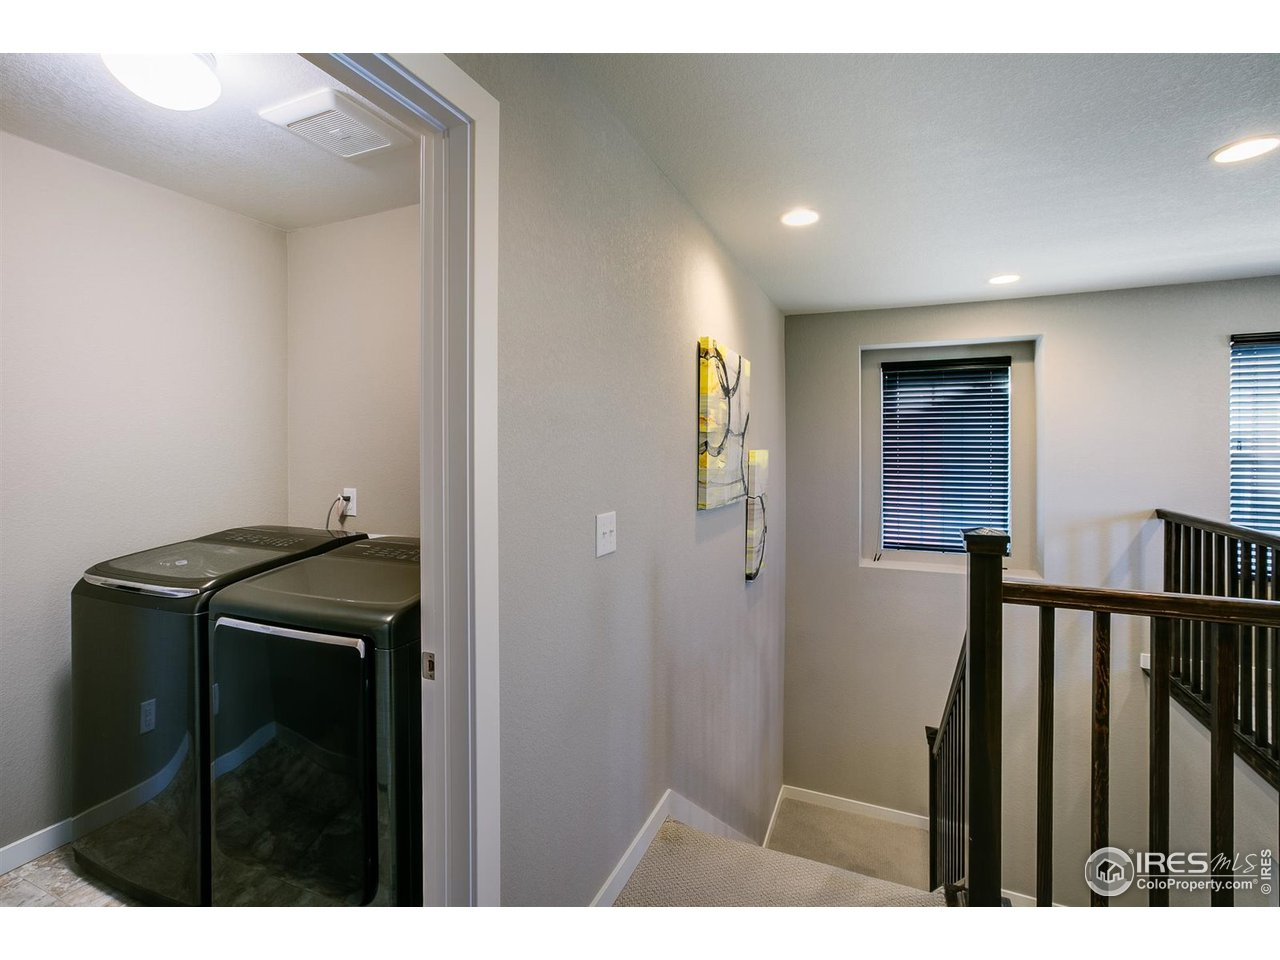 Convenient Upper Level Laundry Room - Washer & Dryer Included